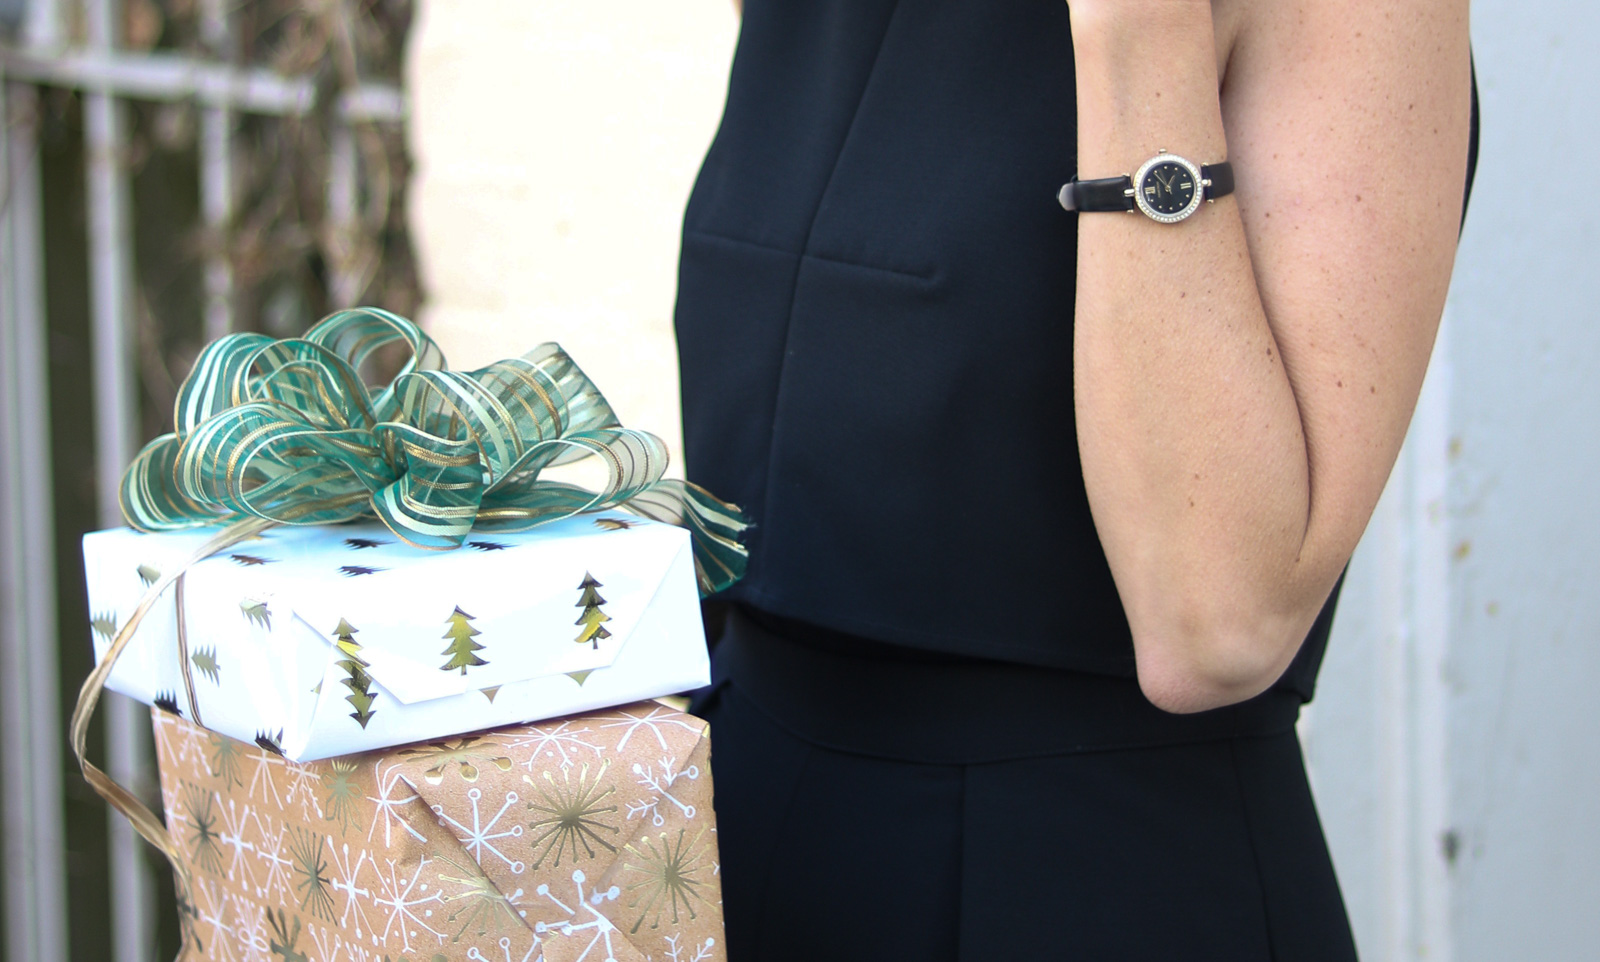 Armitron Watches - The Perfect Gift for the Holidays | Cobalt Chronicles | Washington, DC | Style Blogger - Armitron Watches: The Perfect Holiday Gift by Washington DC style blogger Cobalt Chronicles